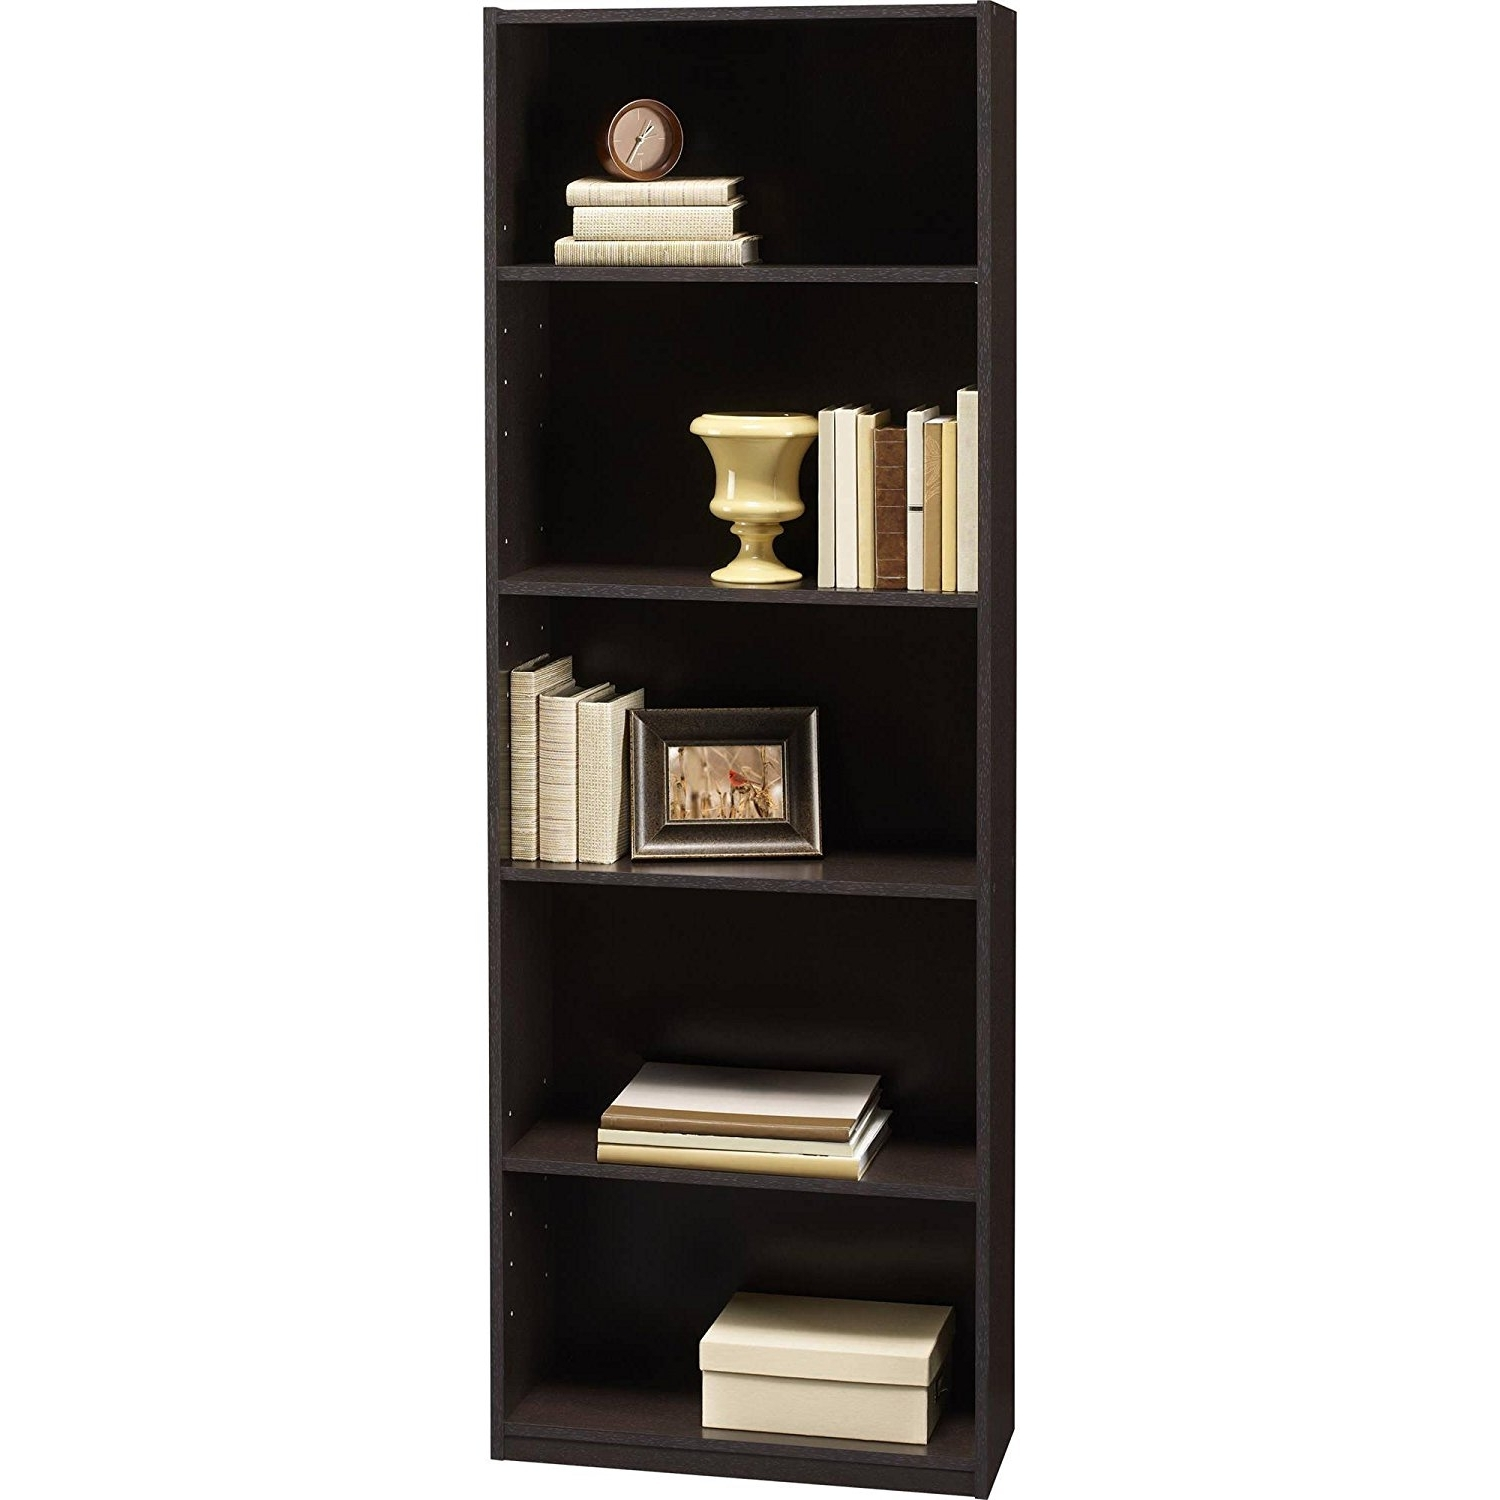 Amazon: Ameriwood 5 Shelf Bookcases, Set Of 2, Espresso With Regard To Trendy White 5 Shelf Bookcases (View 15 of 15)